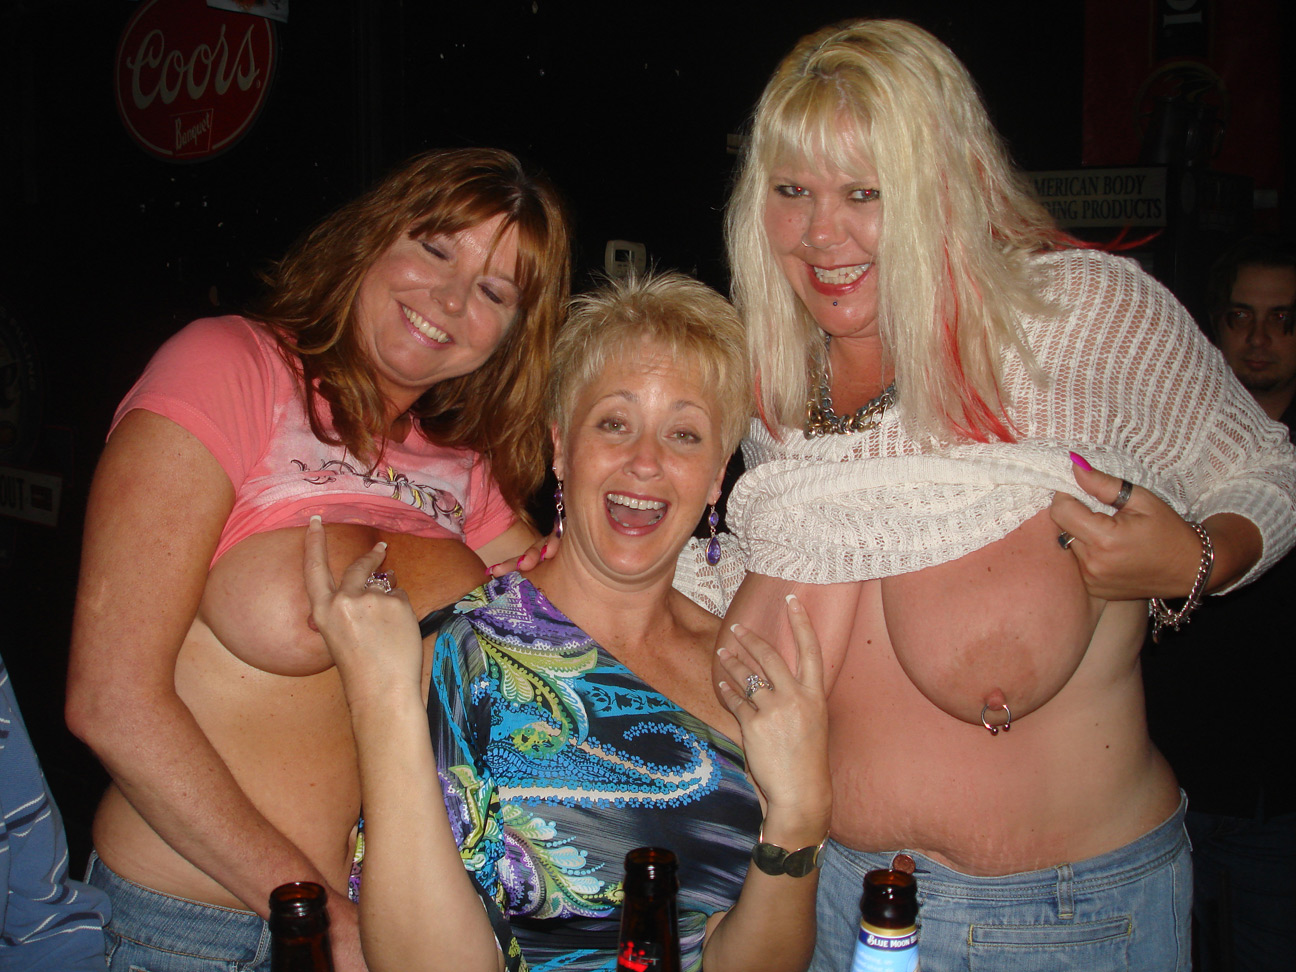 Tracy, Dee & the rest of the hottie wives all get together ...